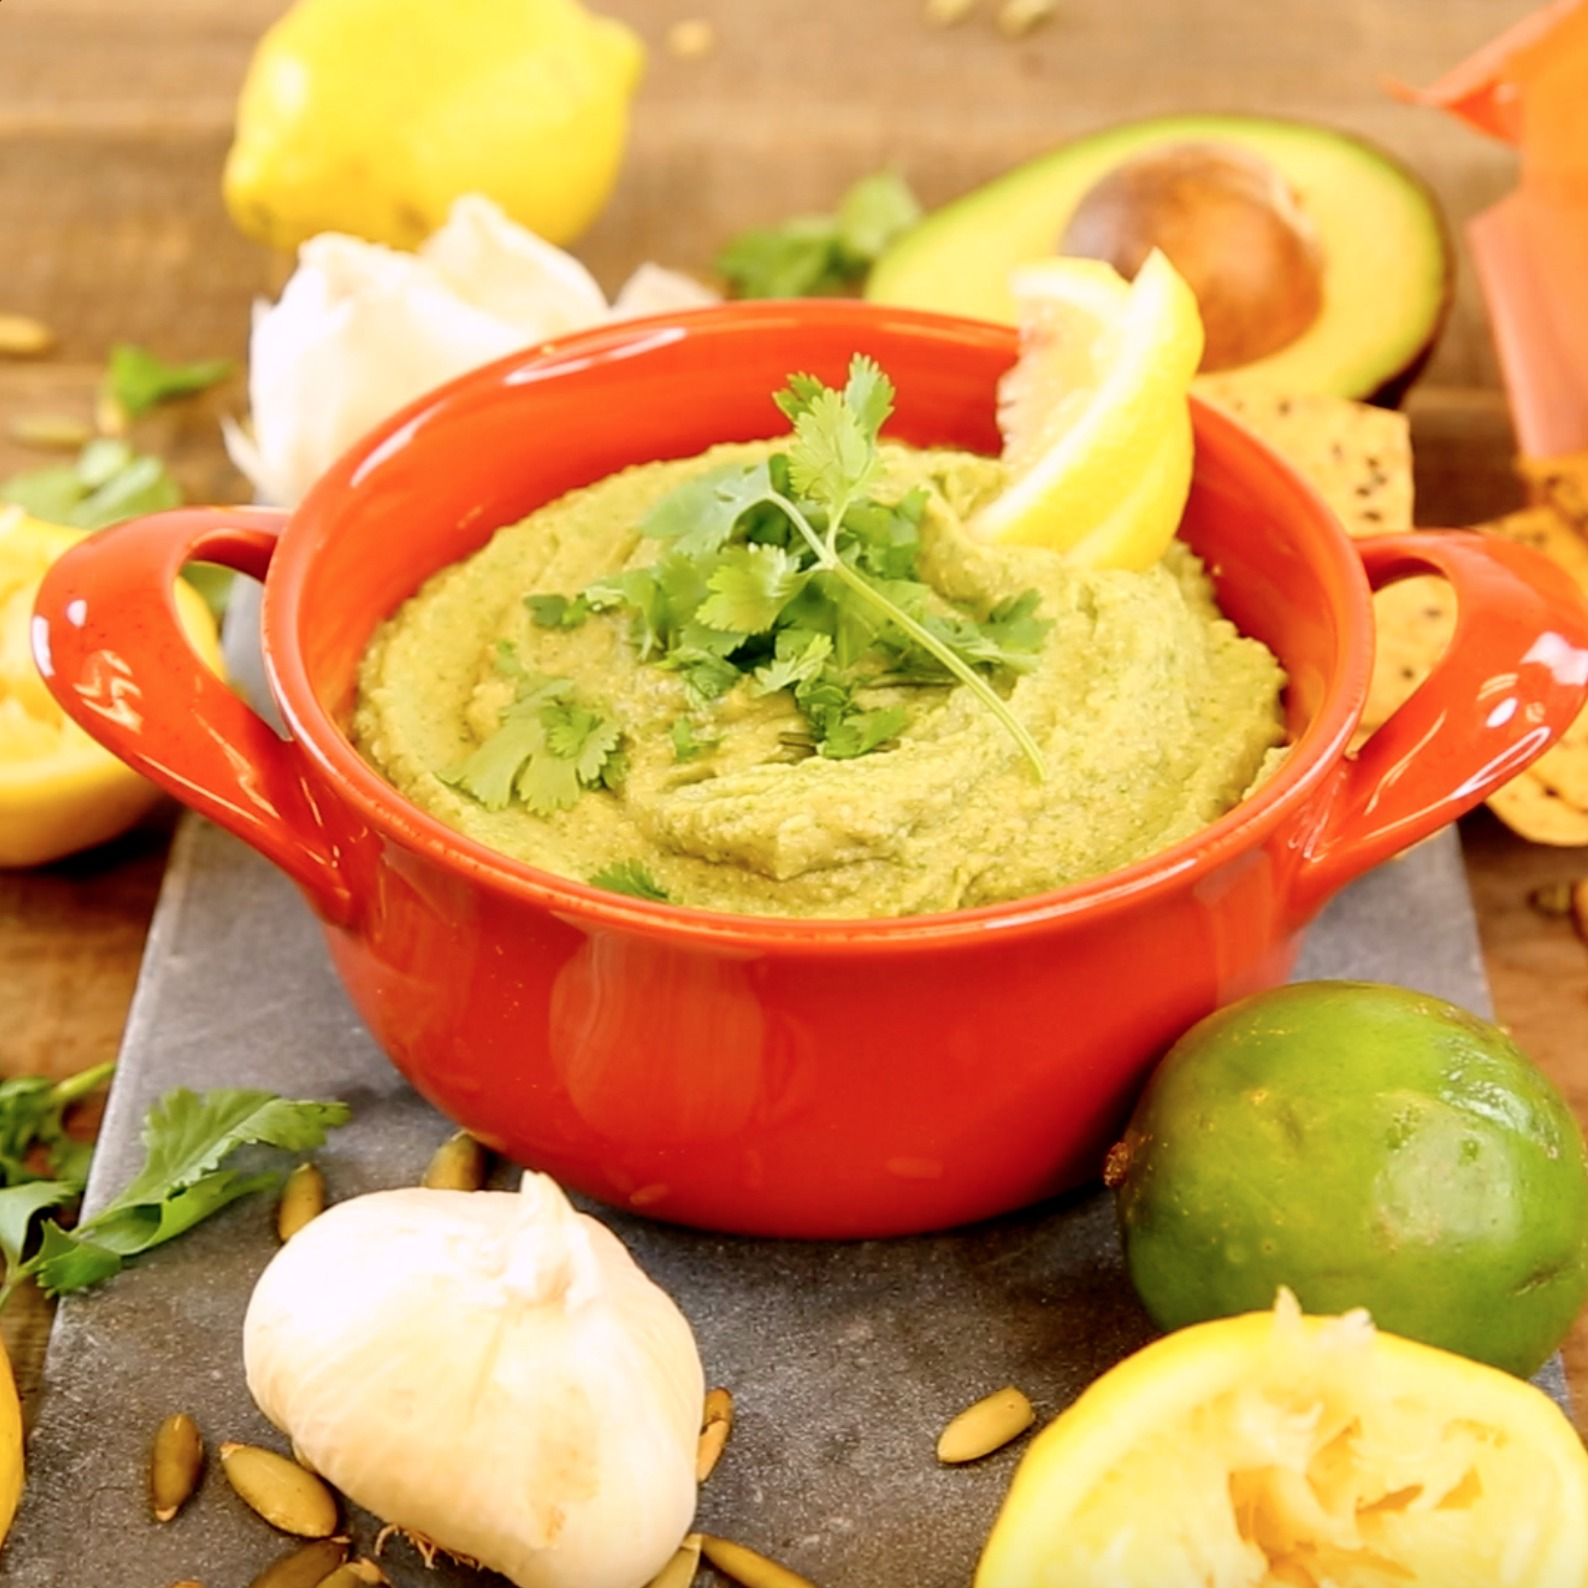 This jalapeño hummus recipe is the only solution for a hot summer